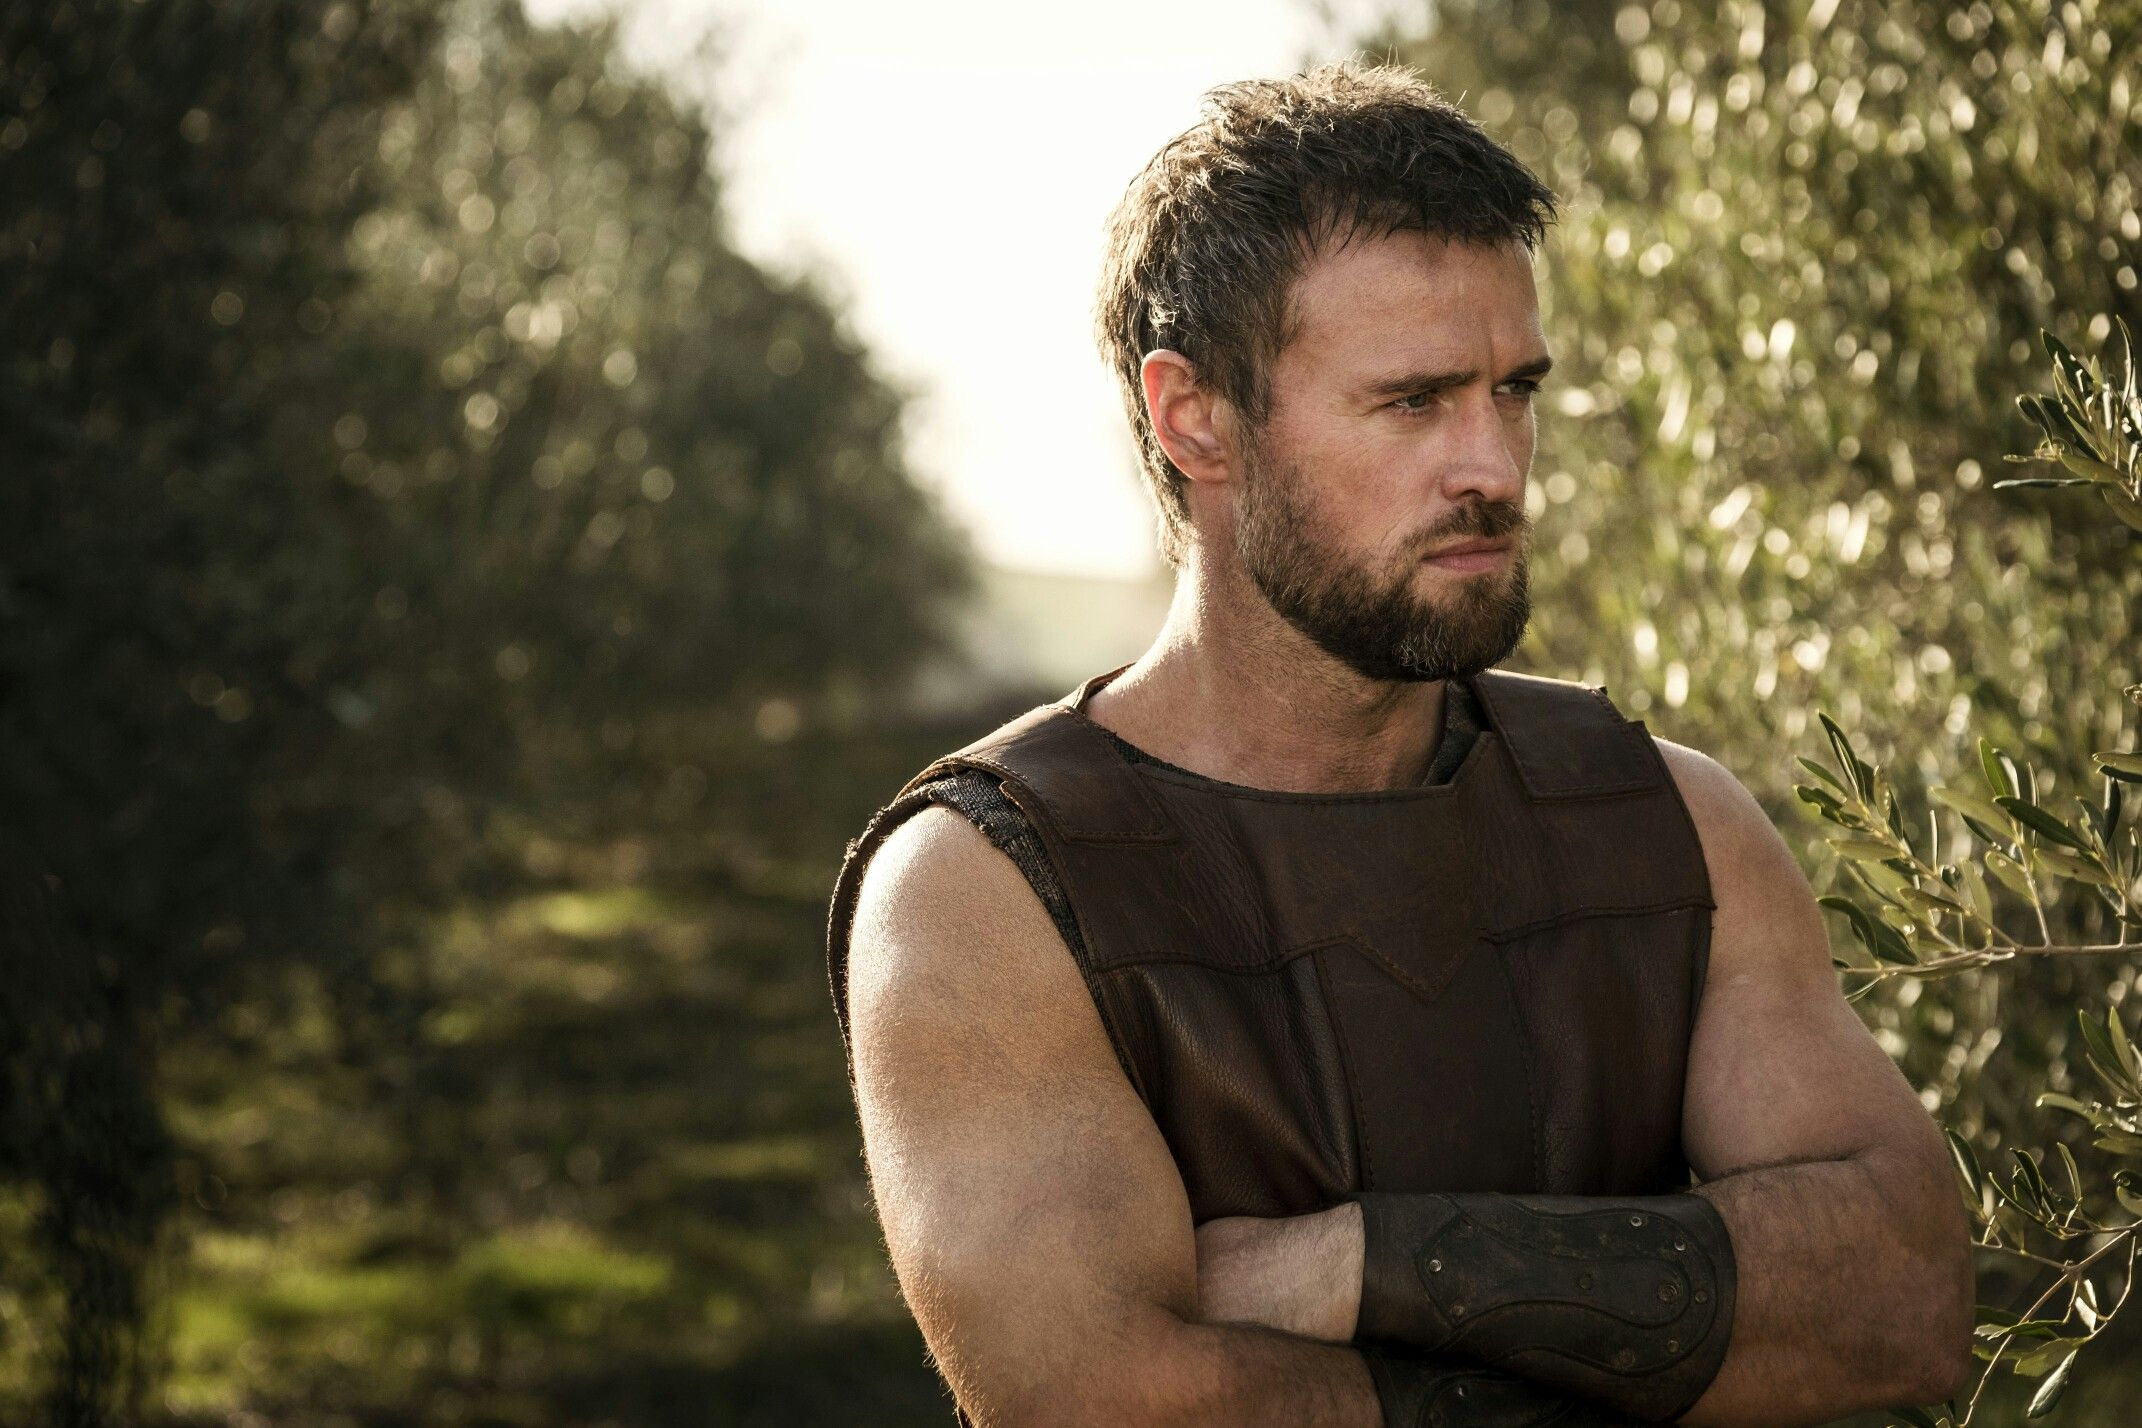 Jonas Armstrong in Troy: The Fall of a City | Jonas ...